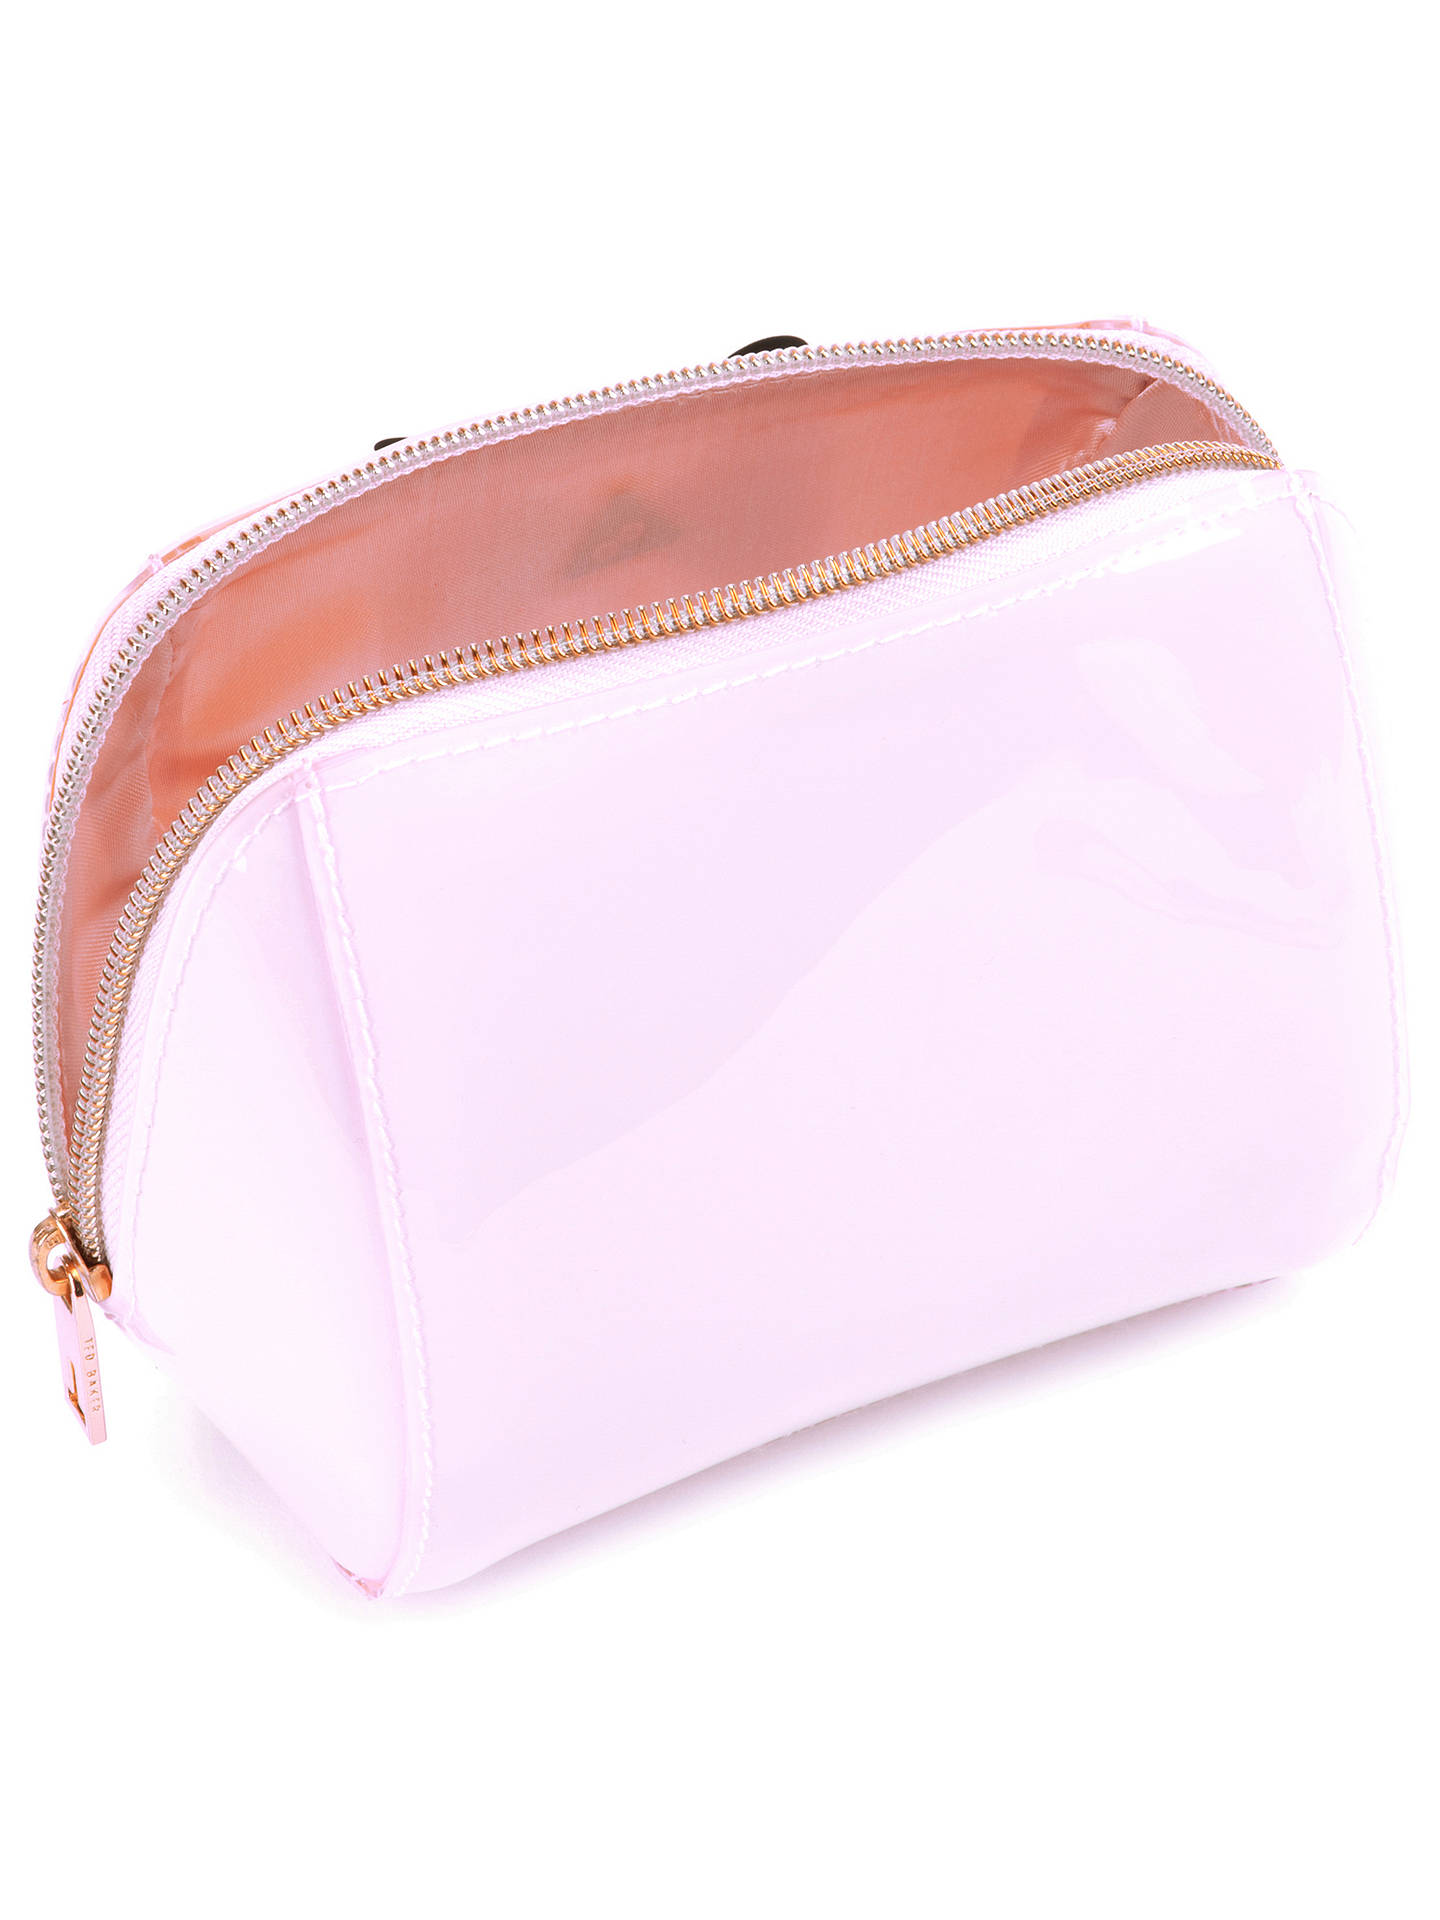 4cf6d15f3 ... Buy Ted Baker Denty Bow Makeup Bag